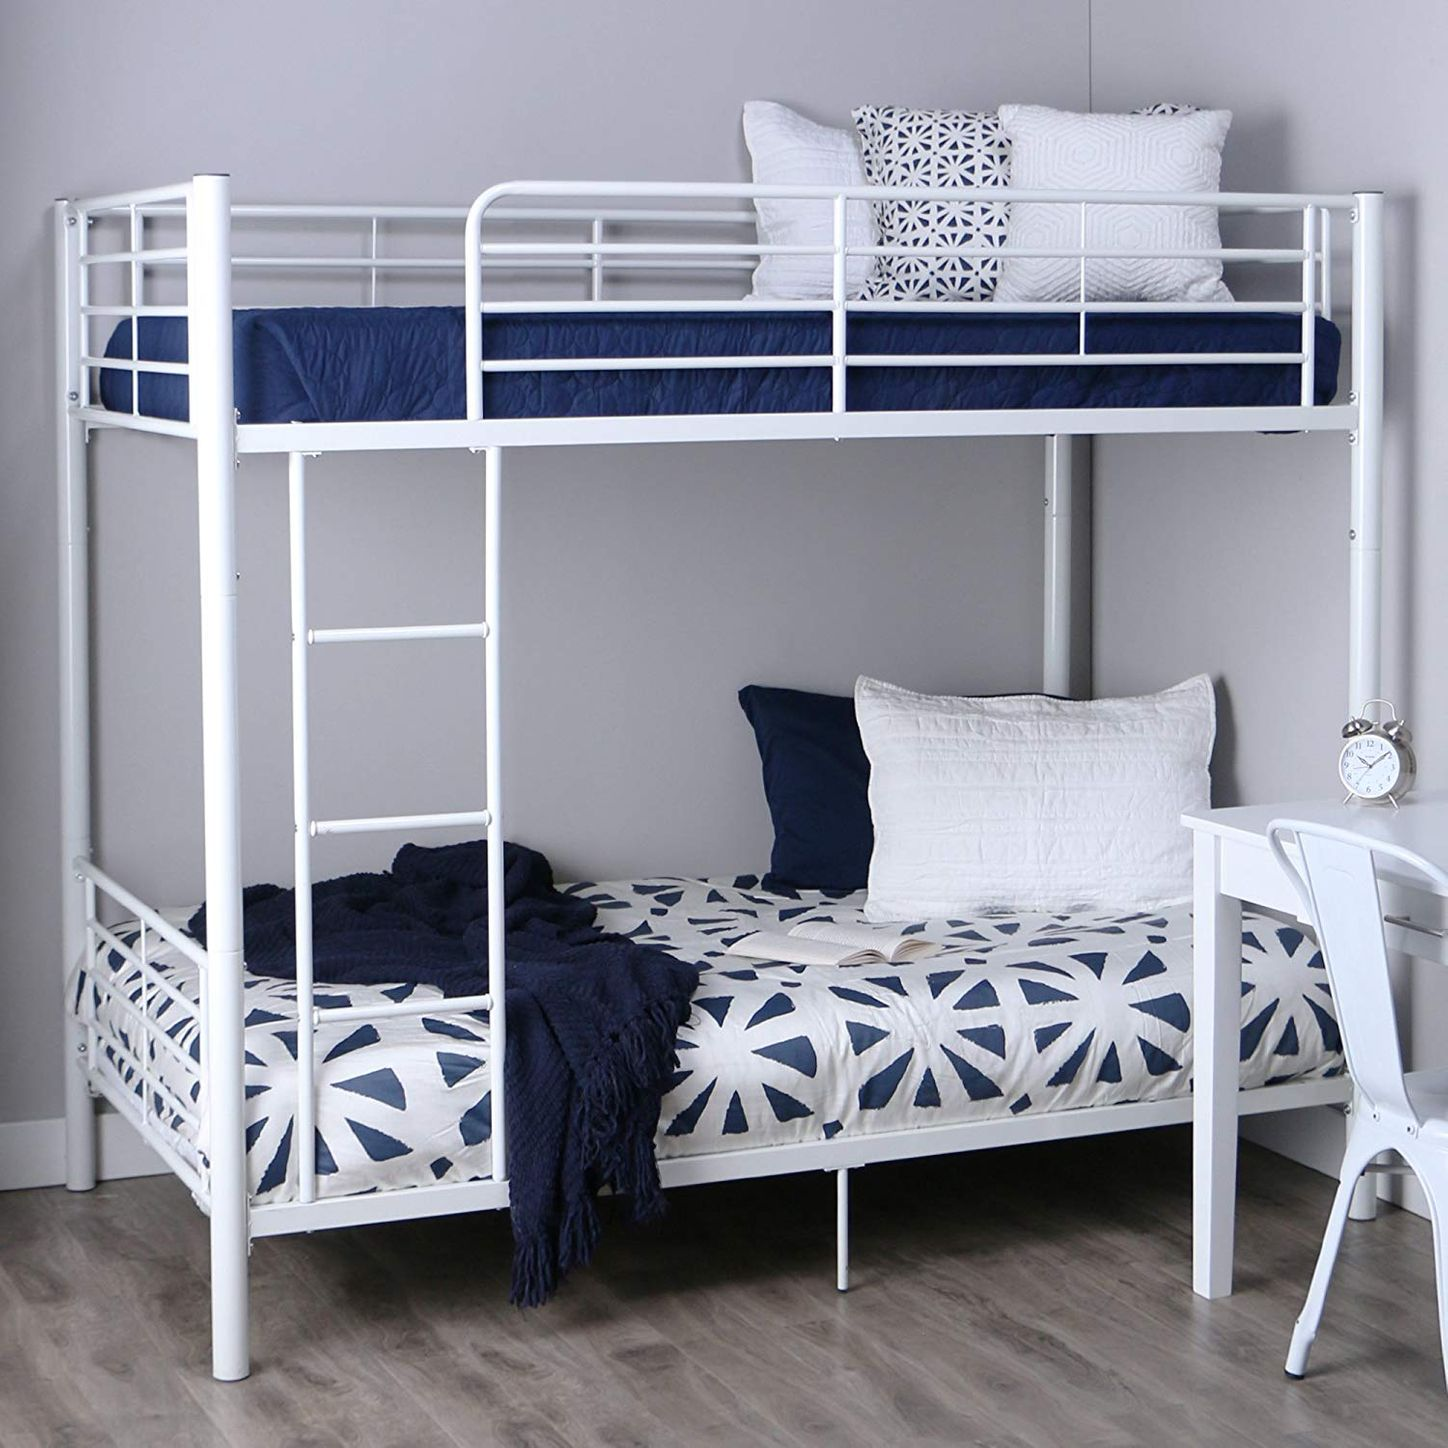 d34dbec75564 Best bunk bed for teenagers. Walker Edison AZTOTWH White bunk Bed, Twin